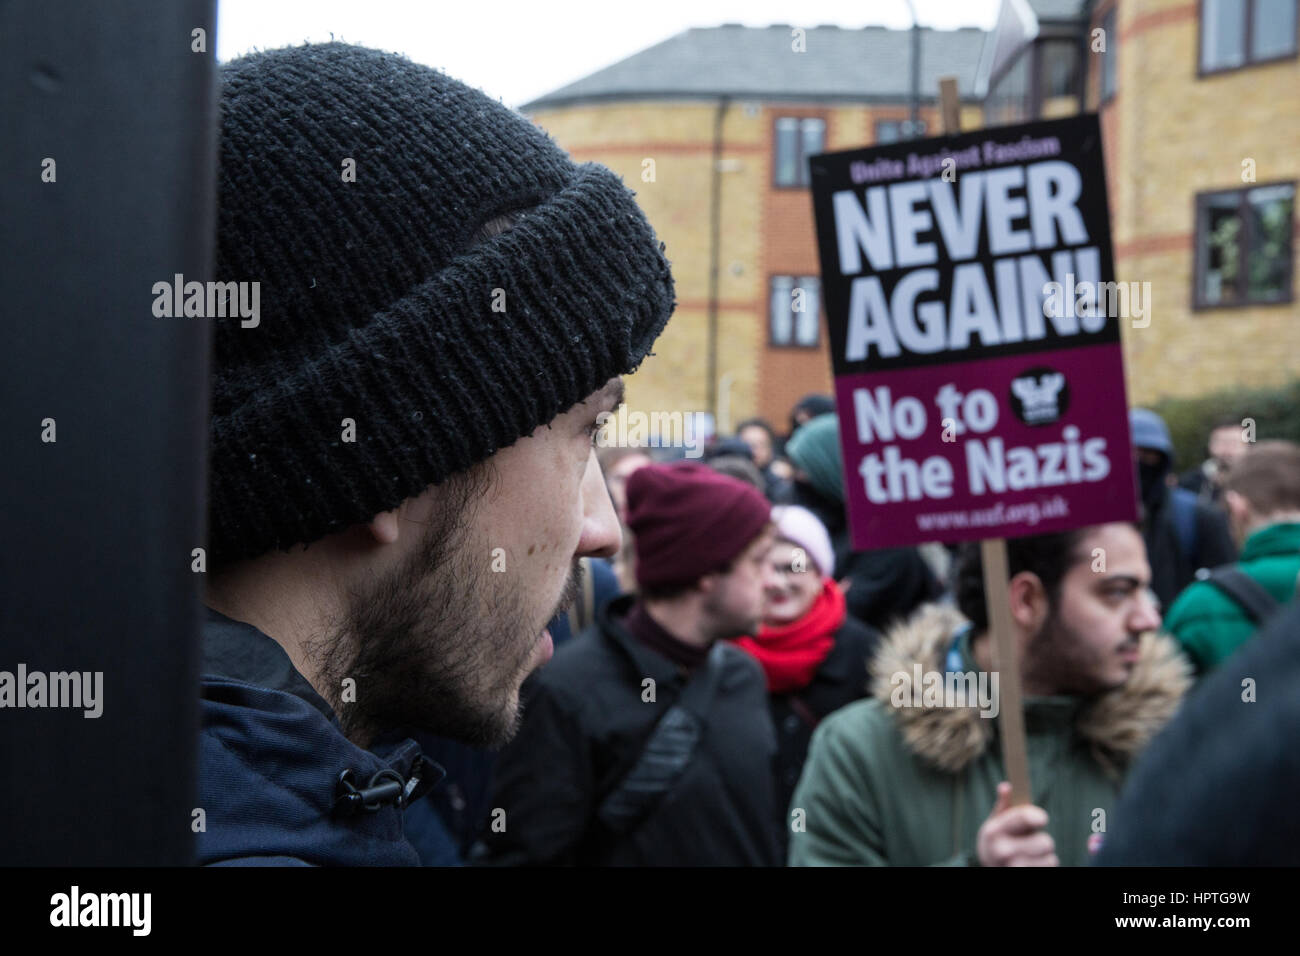 London, UK. 25th Feb, 2017. Anti-fascists contest a man standing outside the LD50 art gallery in Dalston with a Stock Photo